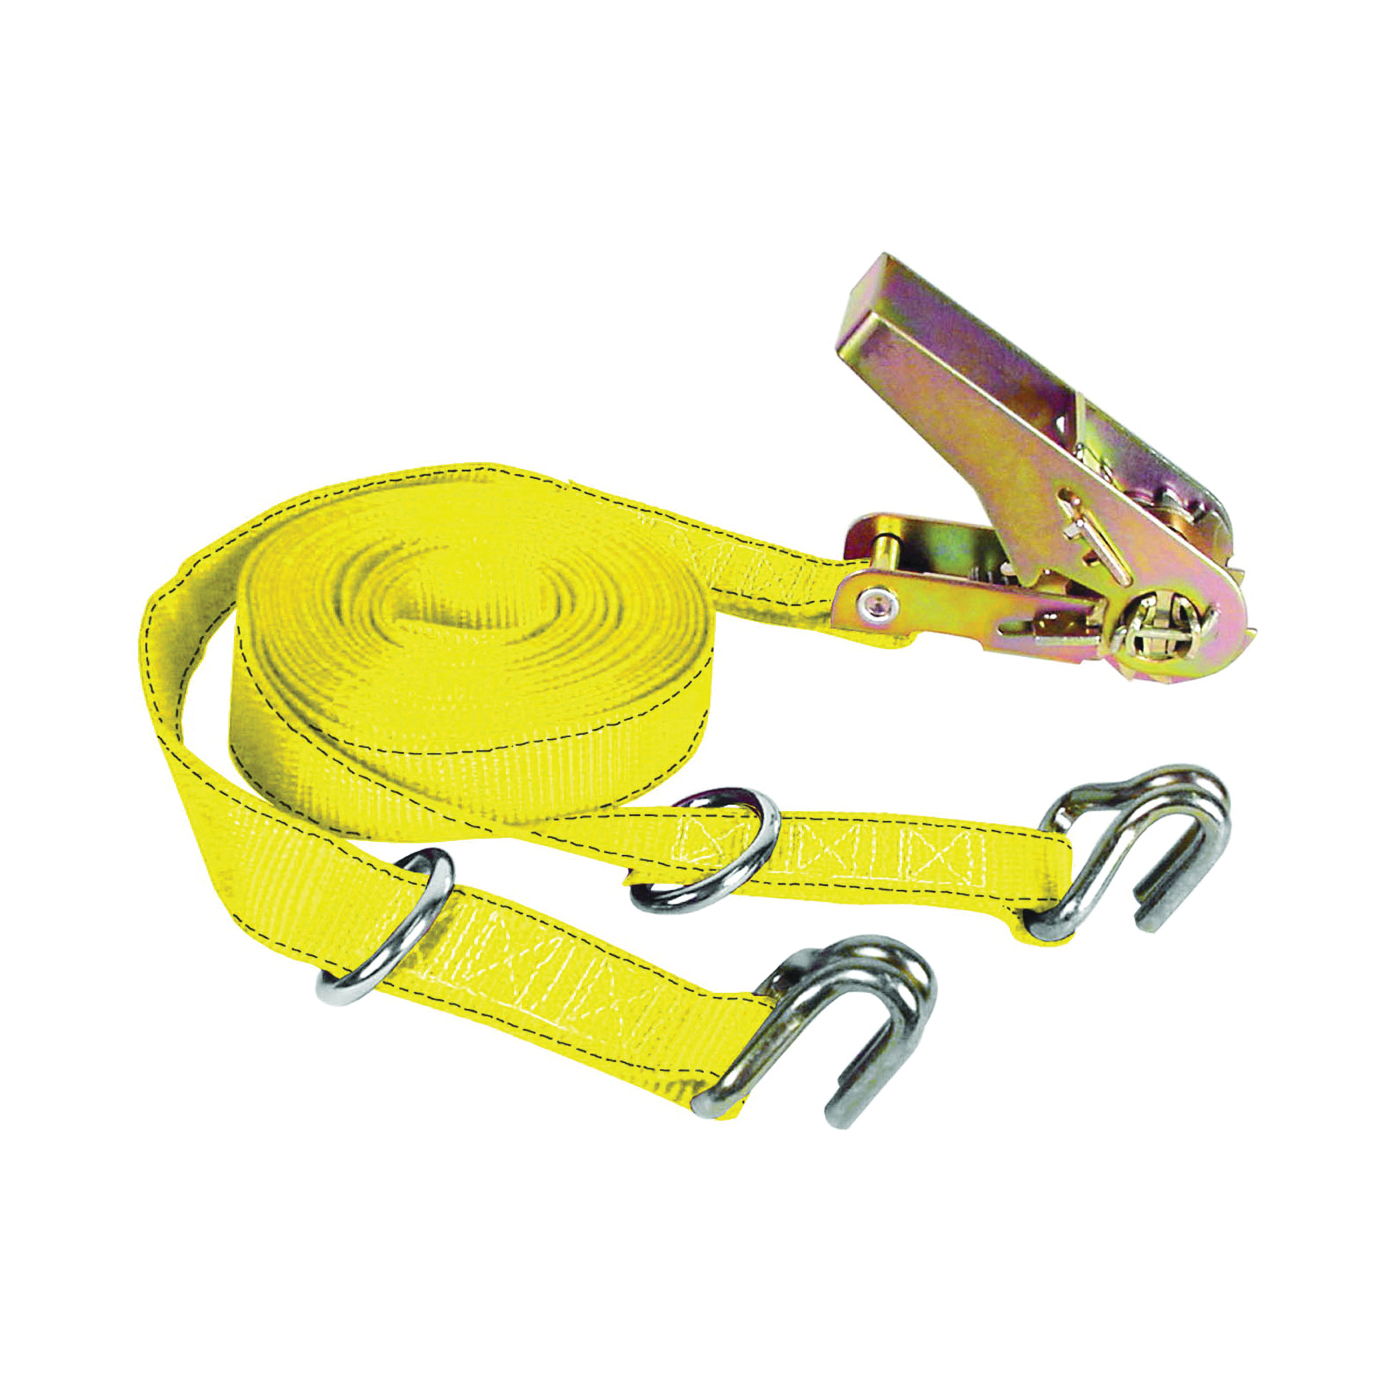 Picture of KEEPER 05516 Tie-Down, 1 in W, 16 ft L, 1000 lb, J-Hook End Fitting